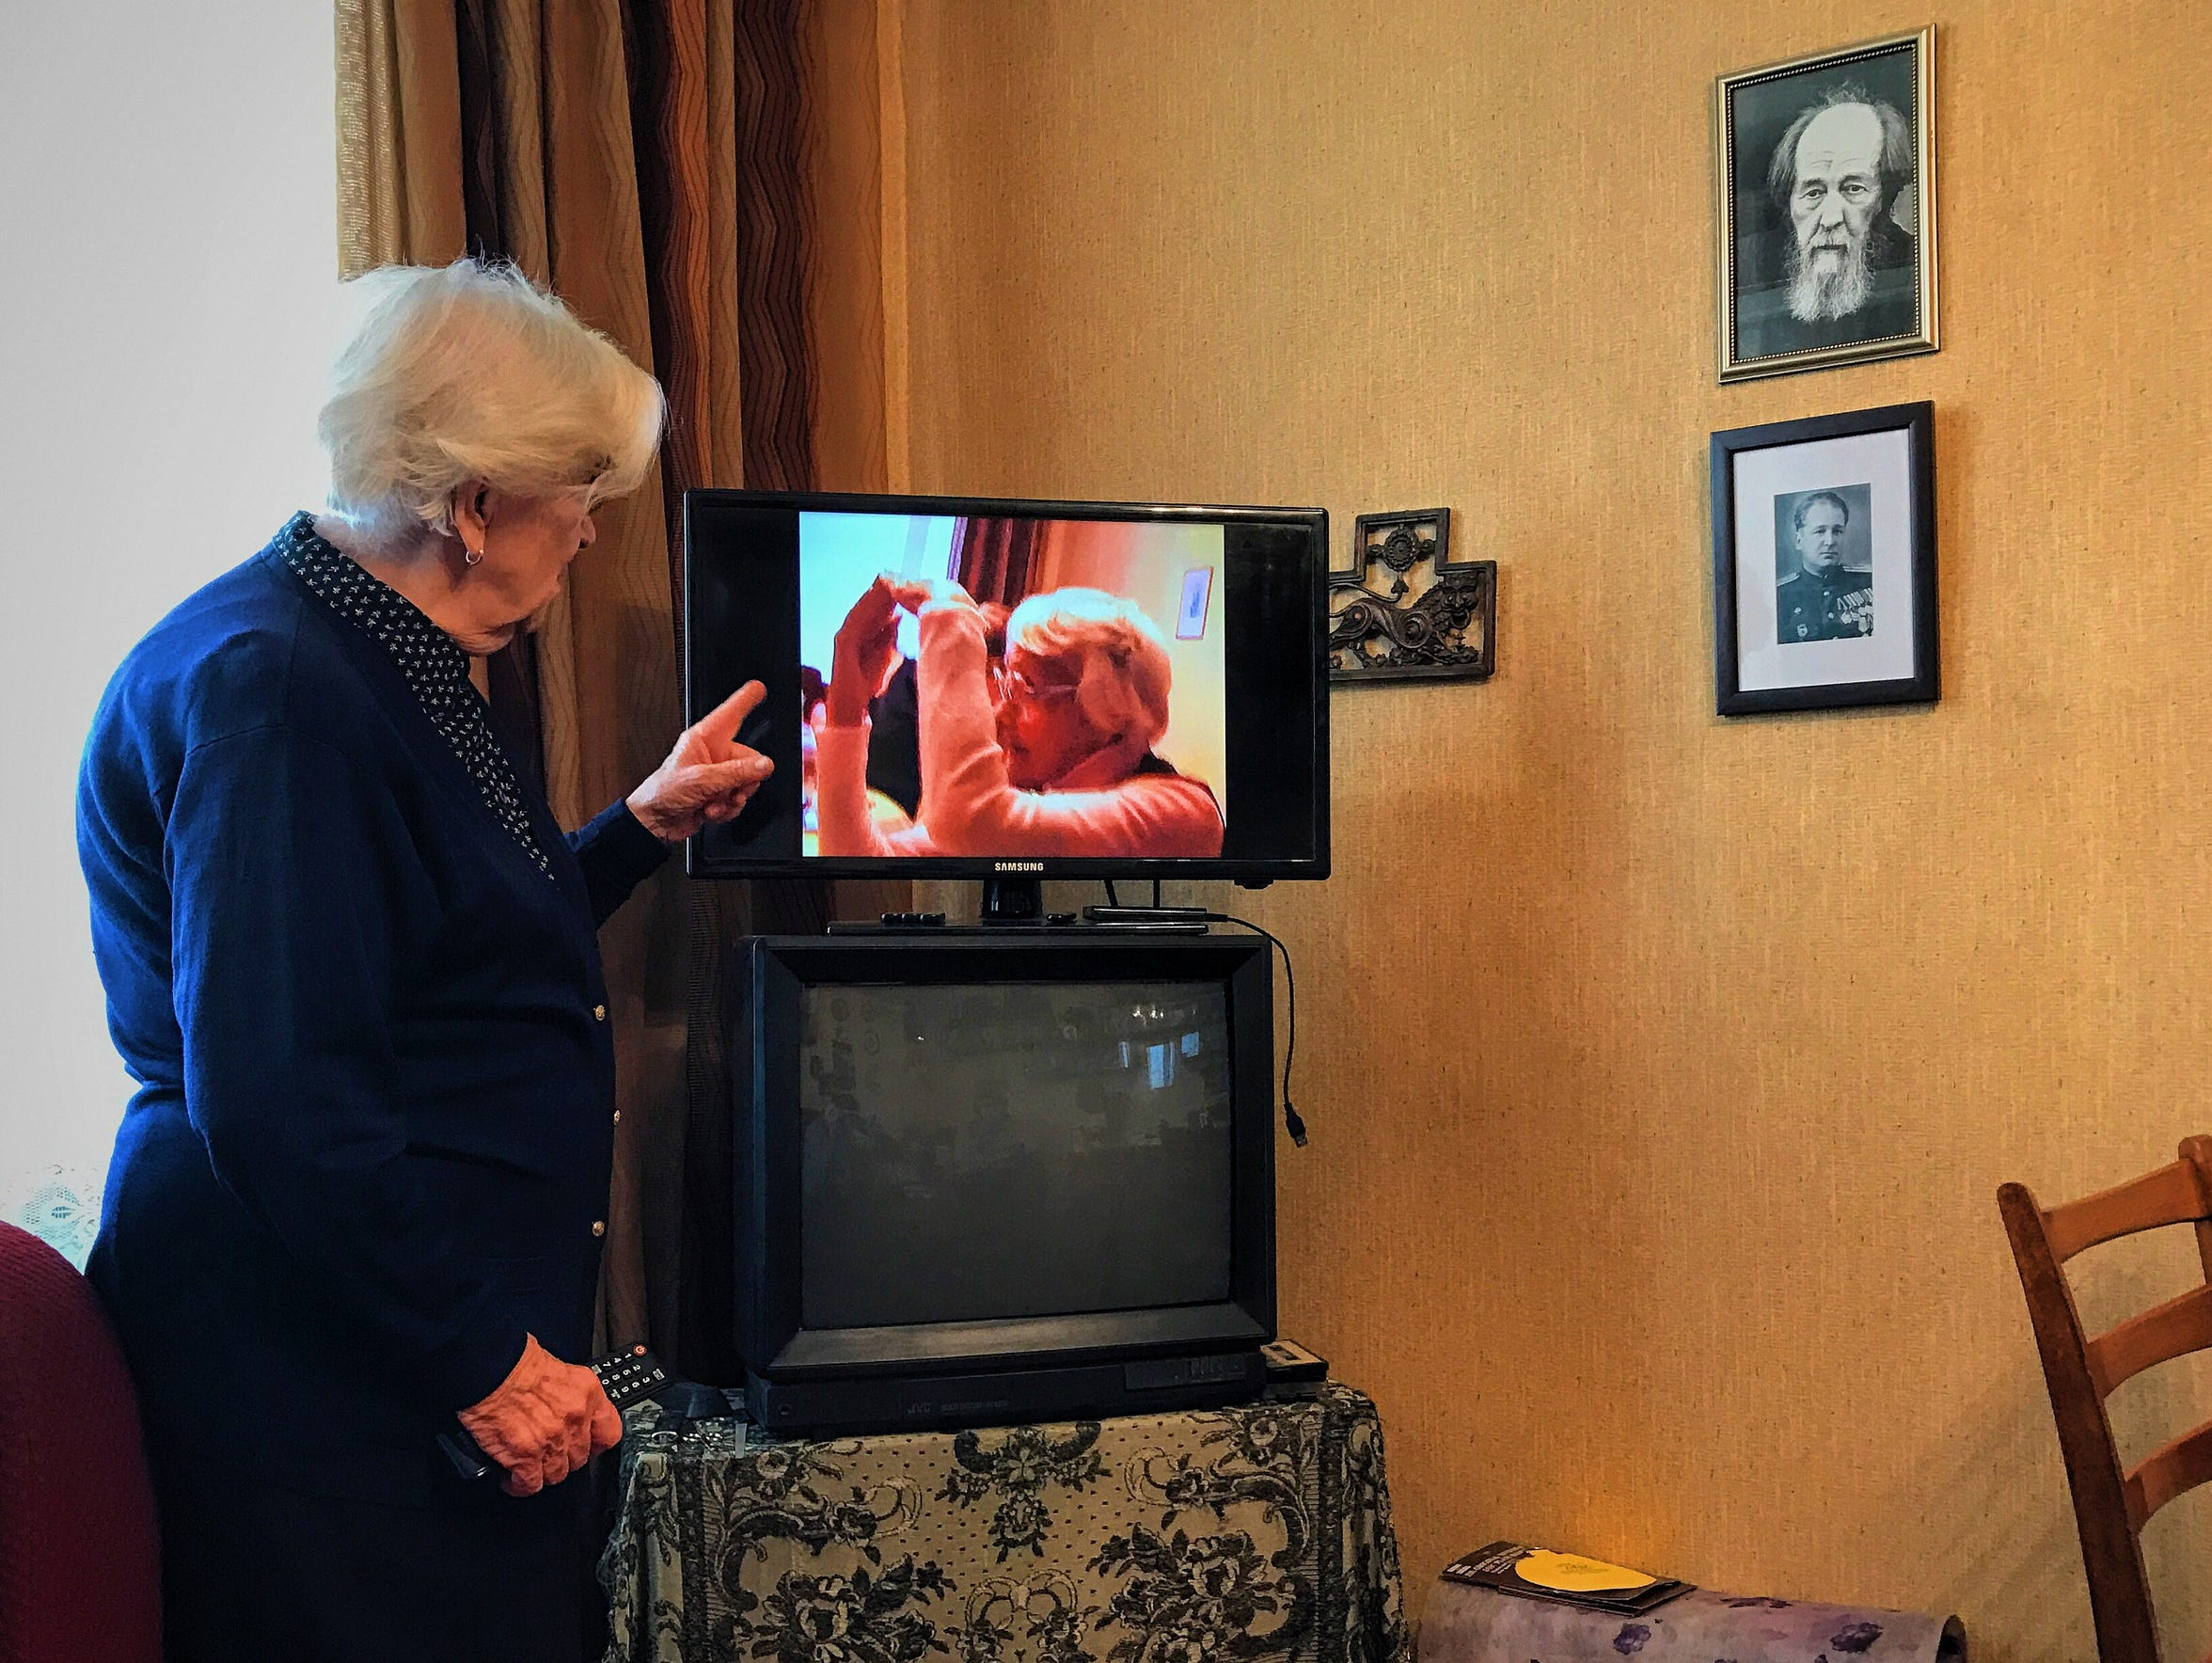 Lyudmila Alekseevna Khachatryan shows a video in her